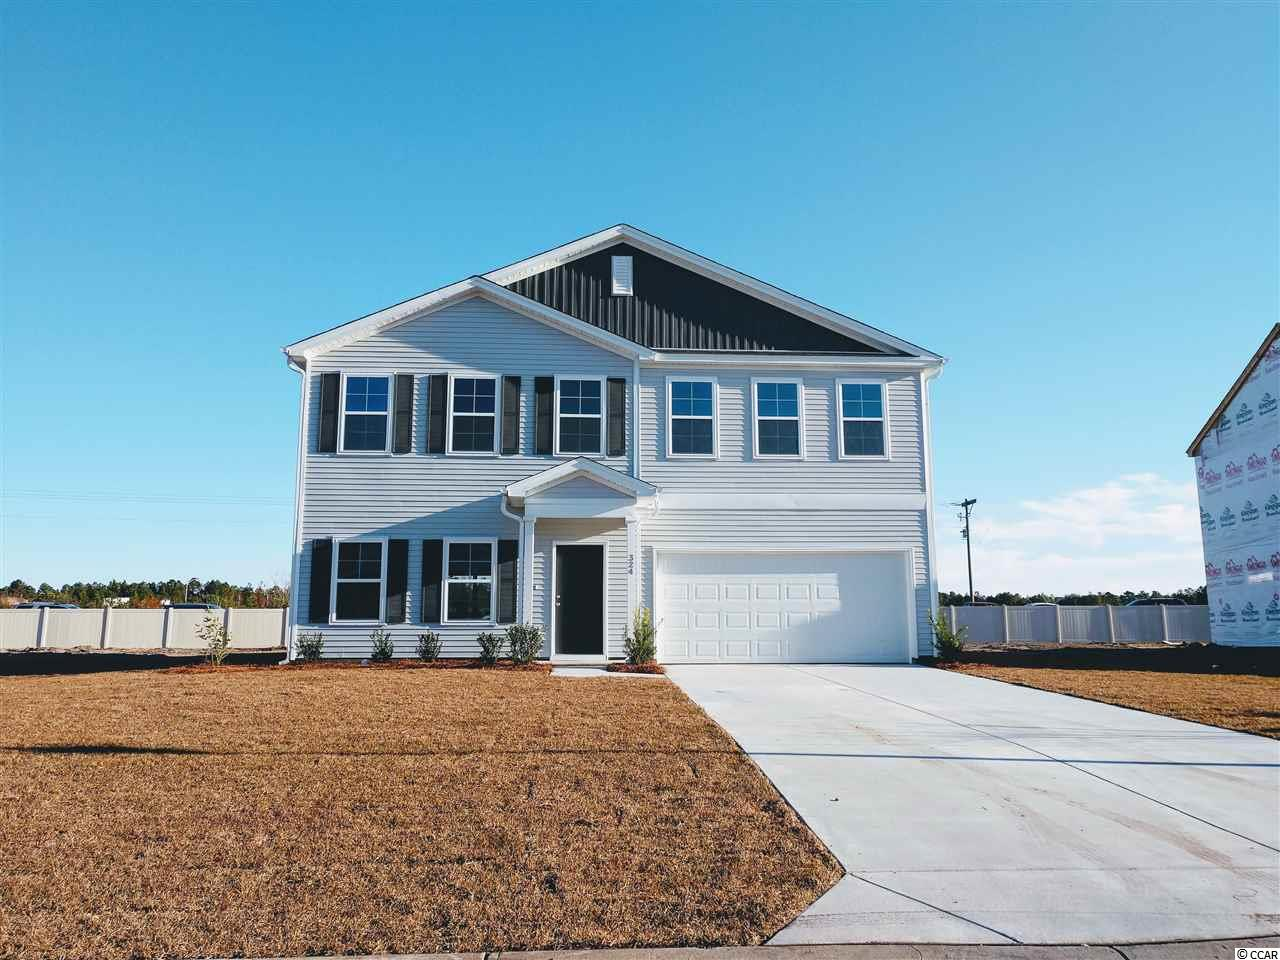 Currently selling at Coastal Point!  Just minutes to Myrtle Beach and historic downtown Conway, close to schools, shopping and the beach!   The McDowell plan is TO-BE-BUILT on any available lot, your buyer can choose their selections!  With 2,218 Htd SF, 2-story, 4 bedrooms 2.5 baths, and flex room/office. Can be built up to 5 bedrooms and 3 baths. Covered porch optional. The pictures shown of another McDowell home plan shows what a wonderful home it can be for your family!  Not the right home? We offer 6 other home plans, from 1,548 to 2,771 Htd SF, 3-6 bedrooms, 2-4 baths.  We have the home that will meet your needs!  All homes have 2 car garages.  Included features: Advanced Framing; Natural Gas! Gas heat, 2nd flr heat pump when separate system required; Tank-less gas hot water; Recessed Ceiling lights in Kitchen; GE Appliances; Kitchen Granite countertops; Programmable Thermostats; 9' ceilings on first floor; Energy Efficient with LED bulbs, 14-SEER HVAC system, Air Barrier, and Sealing;  Architectural Roof Shingles; Vinyl siding with Lifetime Warranty.    Buy with Peace of Mind with our Nationally Recognized Customer Service Care!  We provide Customer Orientations at Pre-construction, Pre-drywall, and Pre-closing, and QBW 2-10 year Warranty. Ask about our incentives and special financing programs!